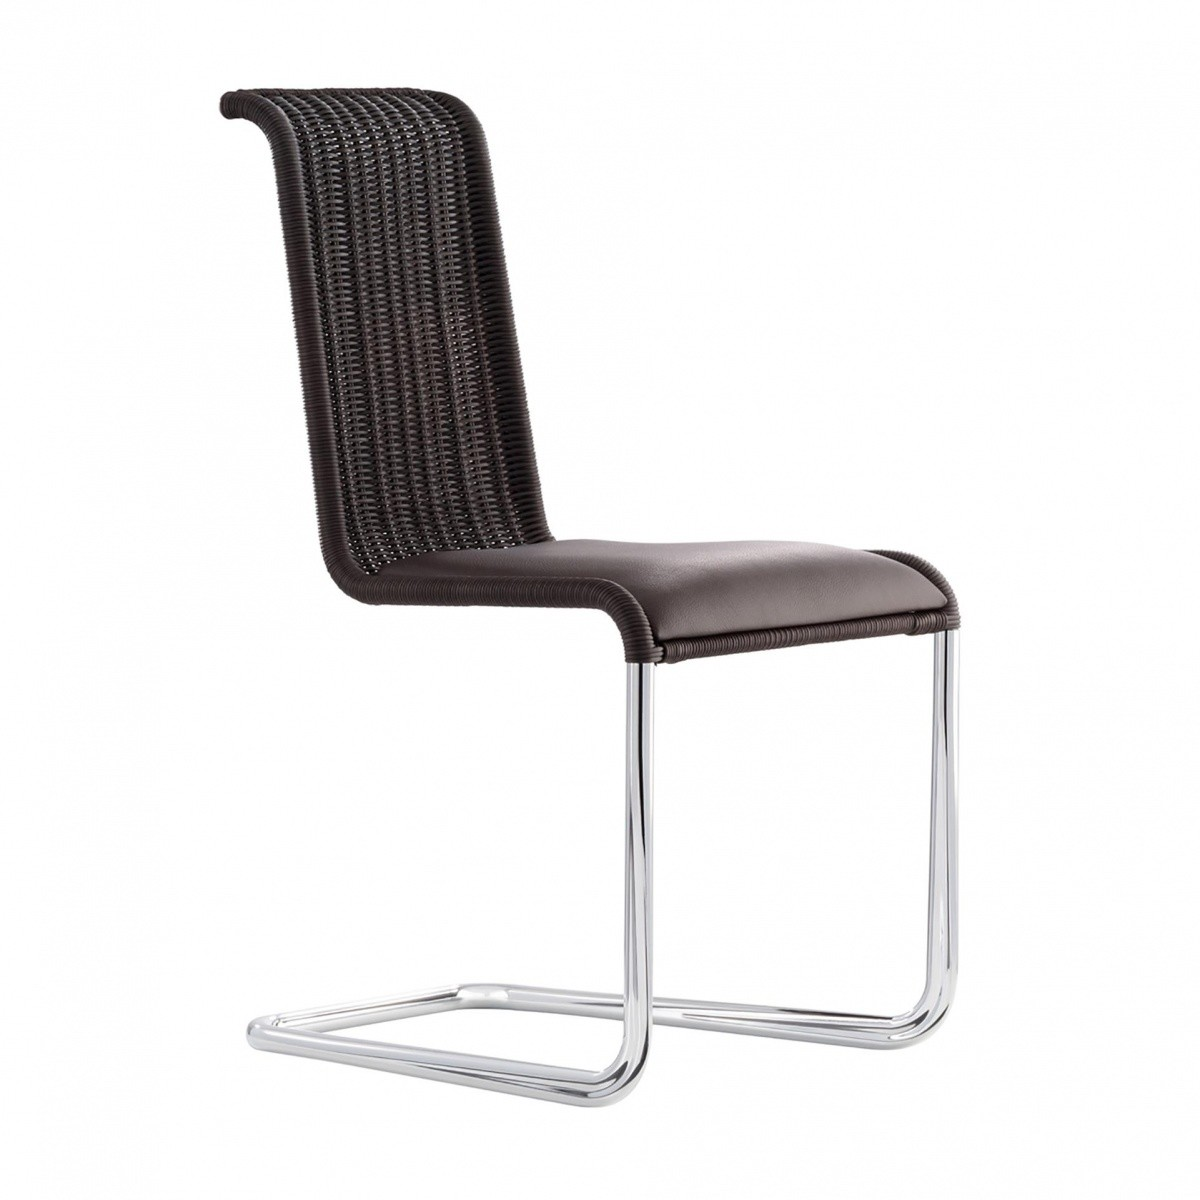 b20i cantilever chair with upholstered seat tecta. Black Bedroom Furniture Sets. Home Design Ideas